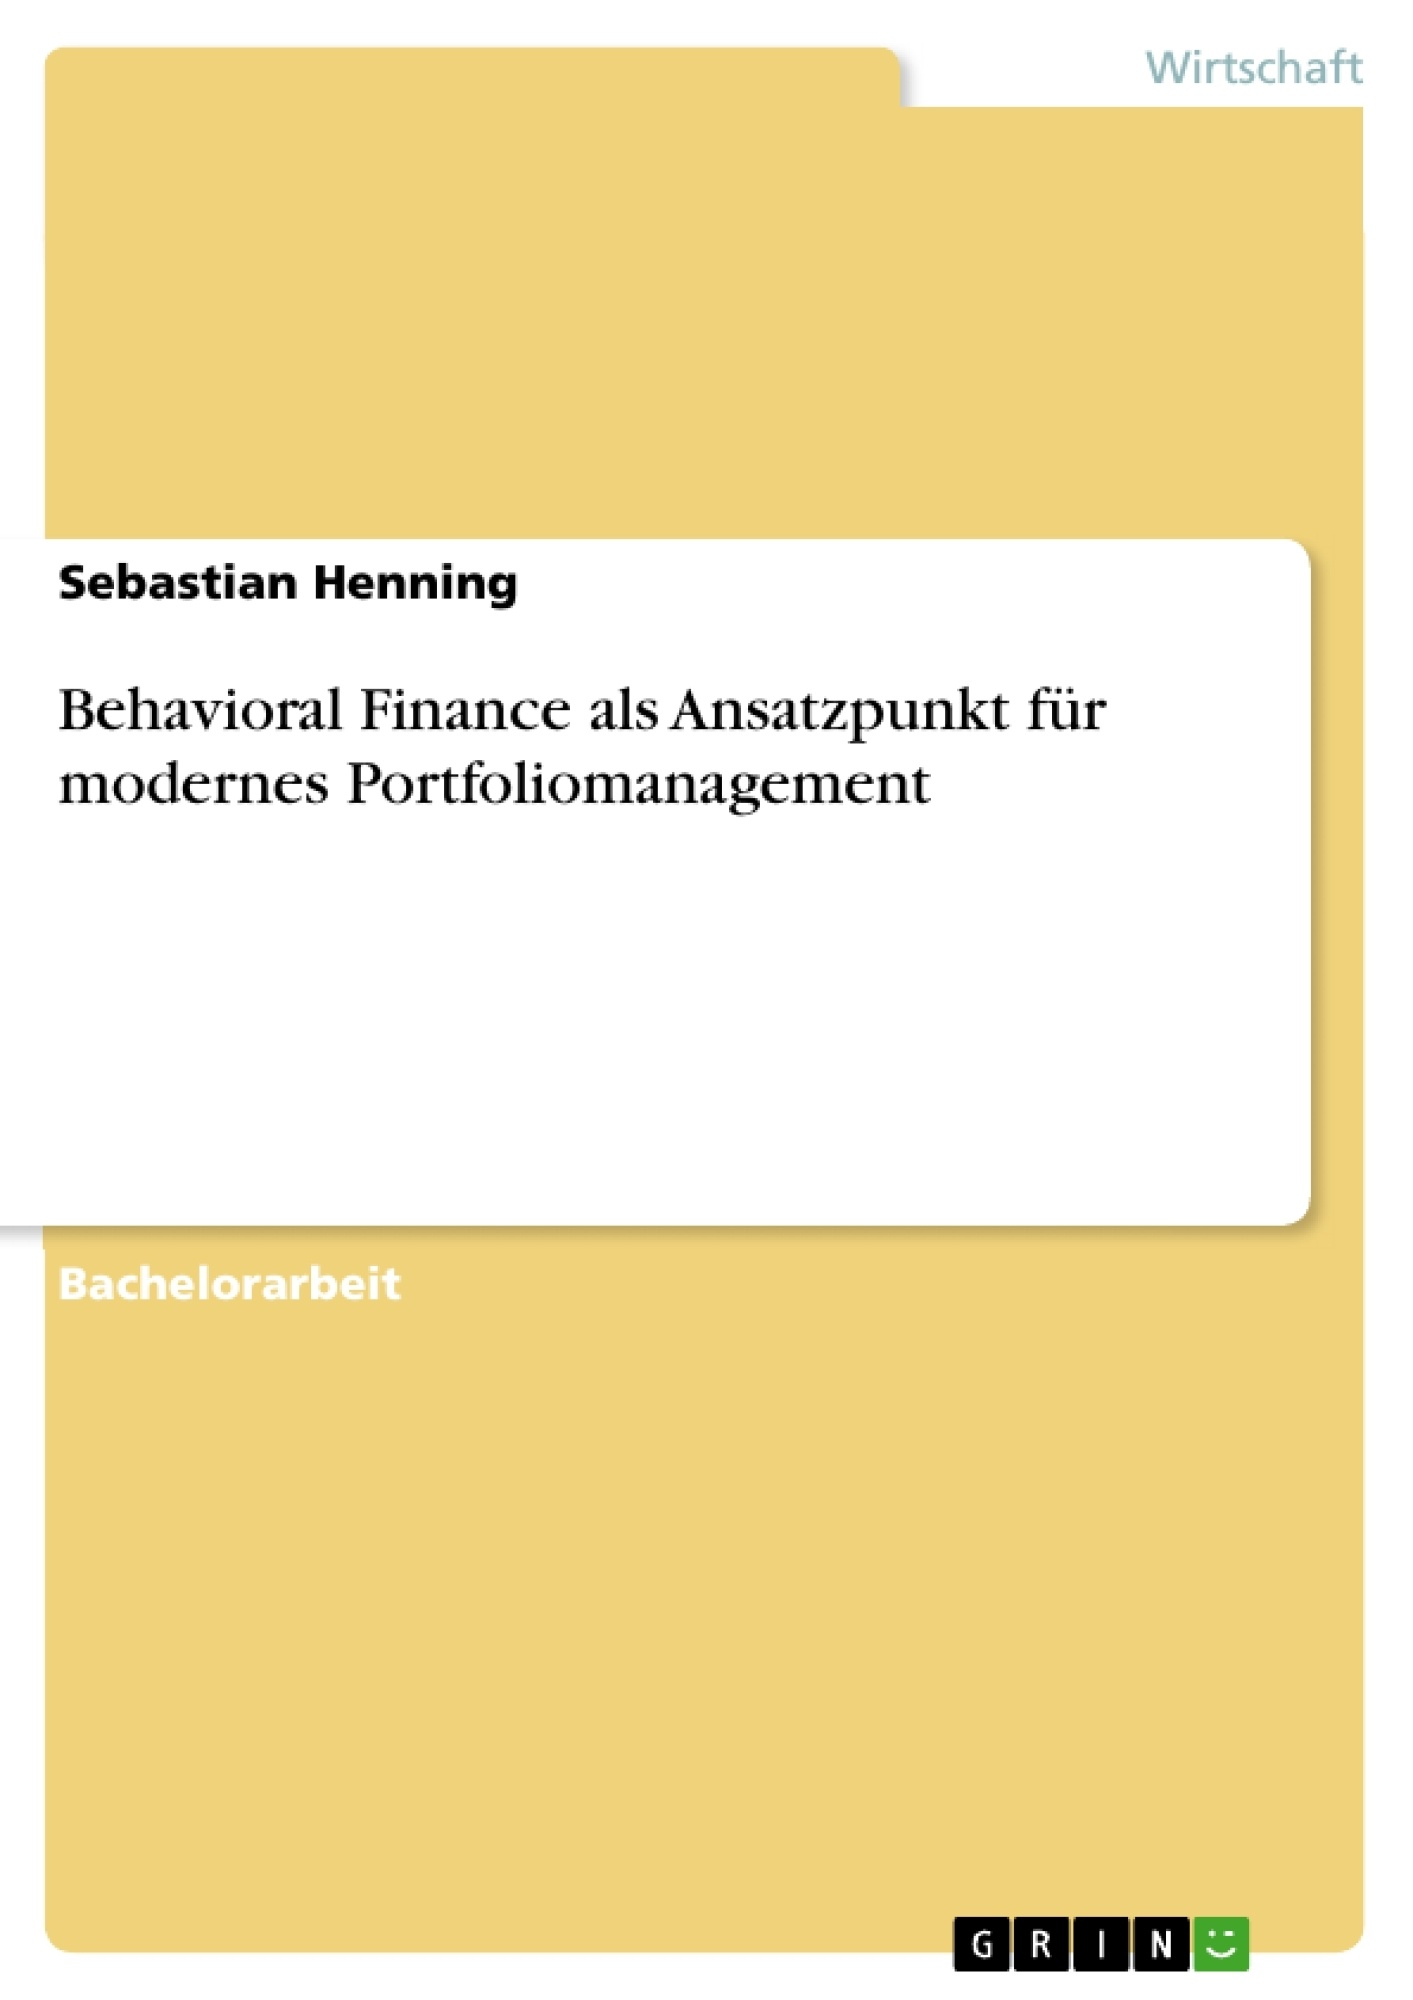 Titel: Behavioral Finance als Ansatzpunkt für modernes Portfoliomanagement